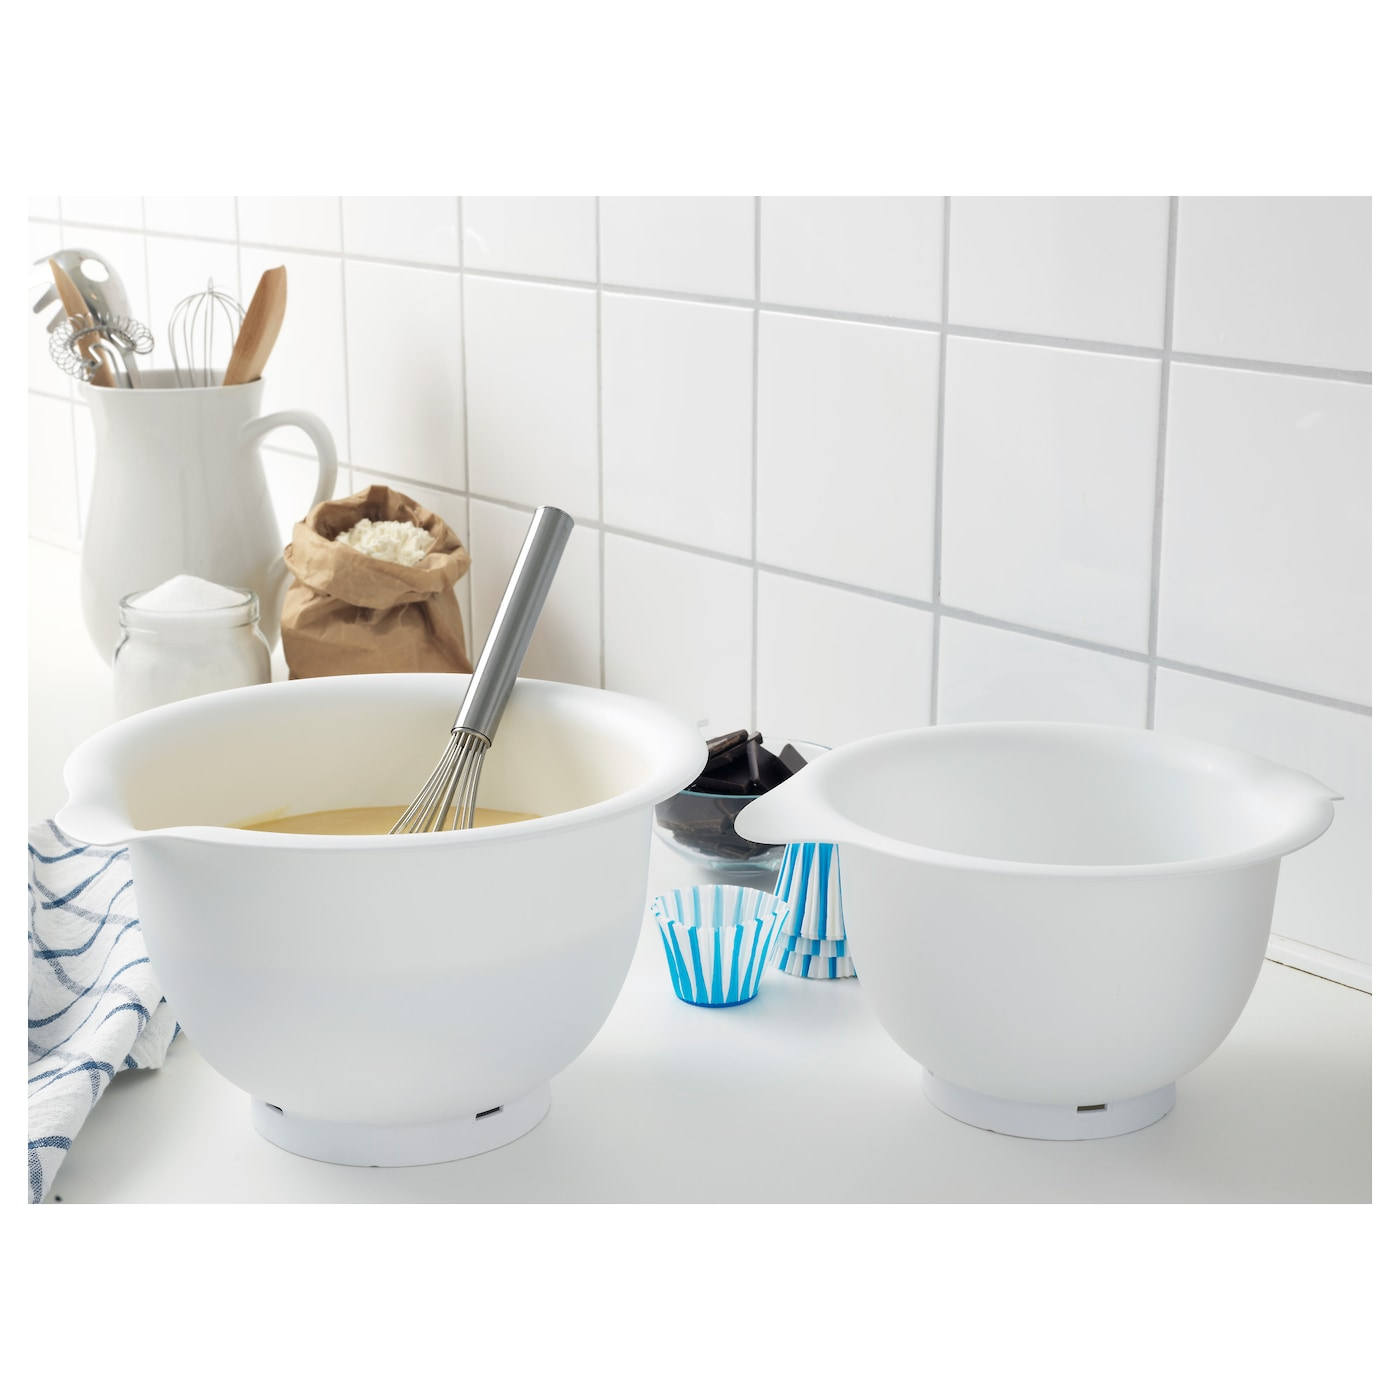 IKEA VISPAD mixing bowl, set of 2